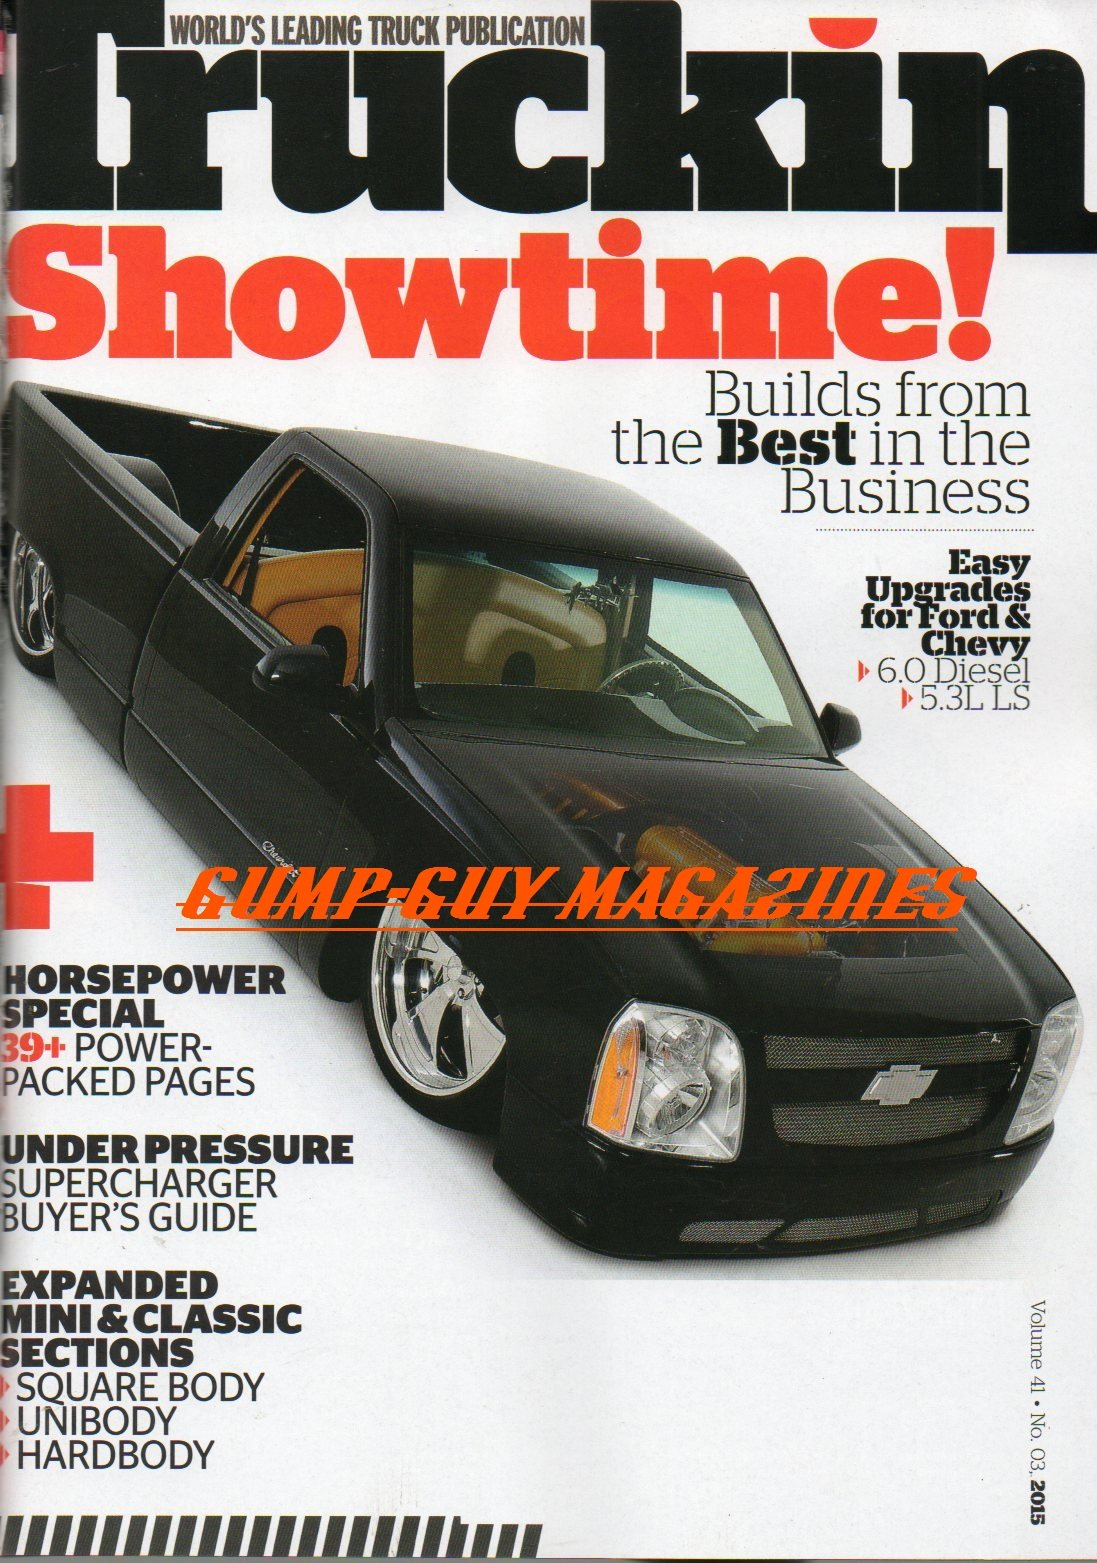 Download Truckin Volume 41 No 3 Magazine 2015 EASY UPGRADES FOR FORD CHEVY Supercharger Buyer's Guide EXPANDED MINI & CLASSIC SECTIONS: SQUARE BODY, UNIBODY HARDBODY '07 Silverado CHASSIS ebook